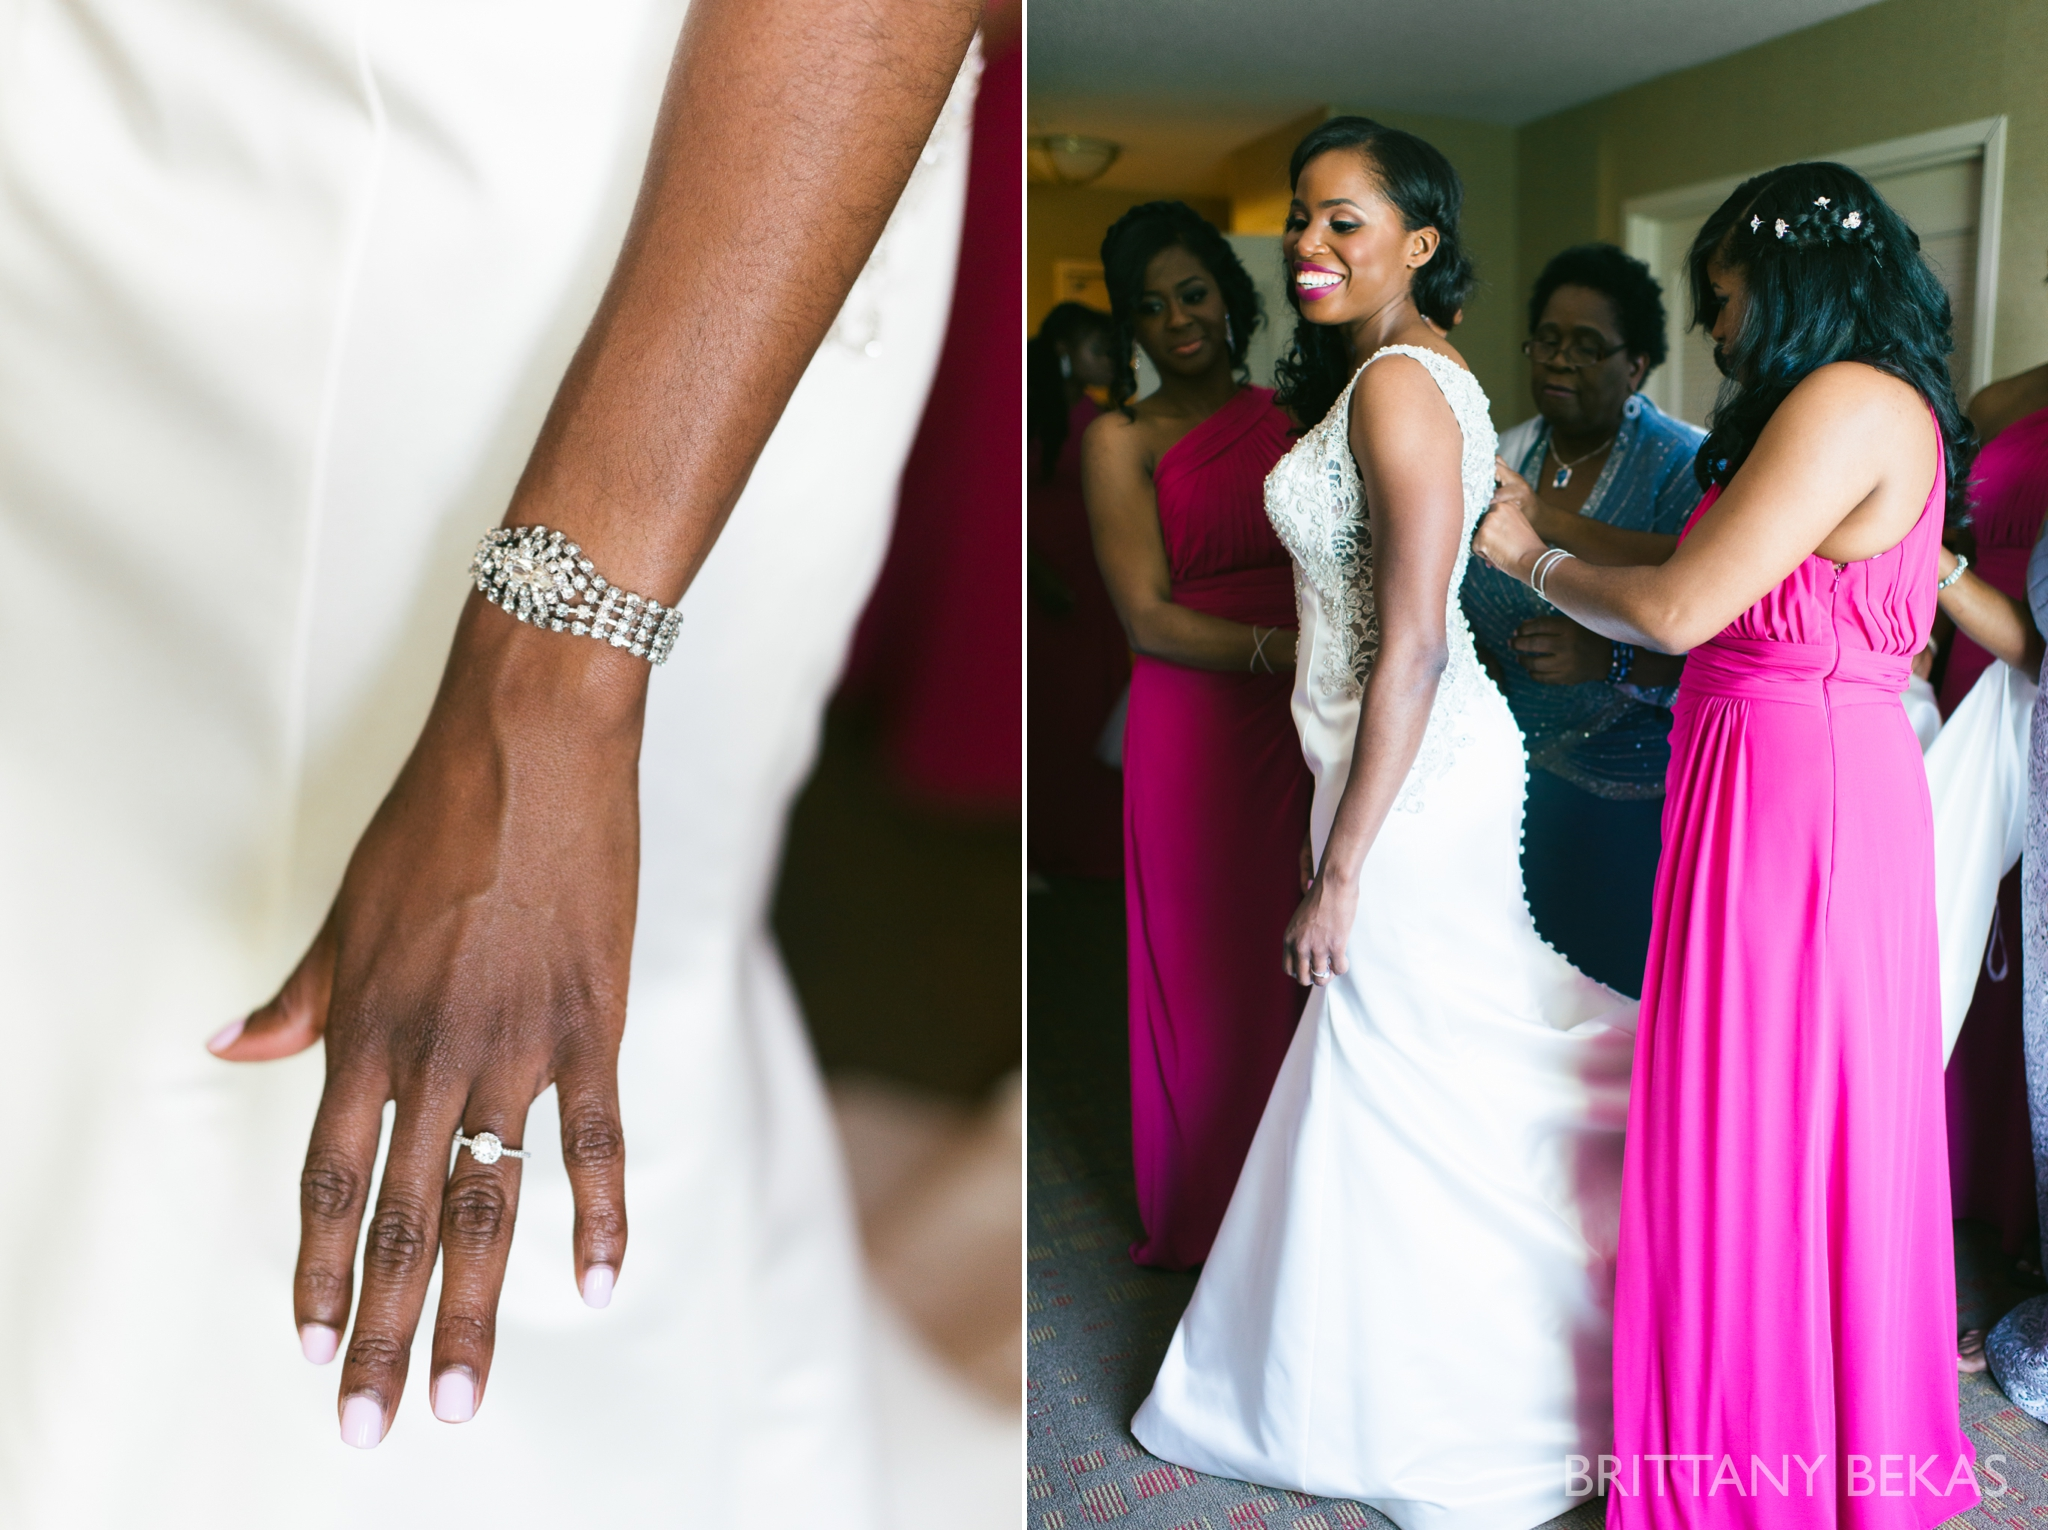 Patrick Haley Mansion Wedding - Brittany Bekas Photography_0007